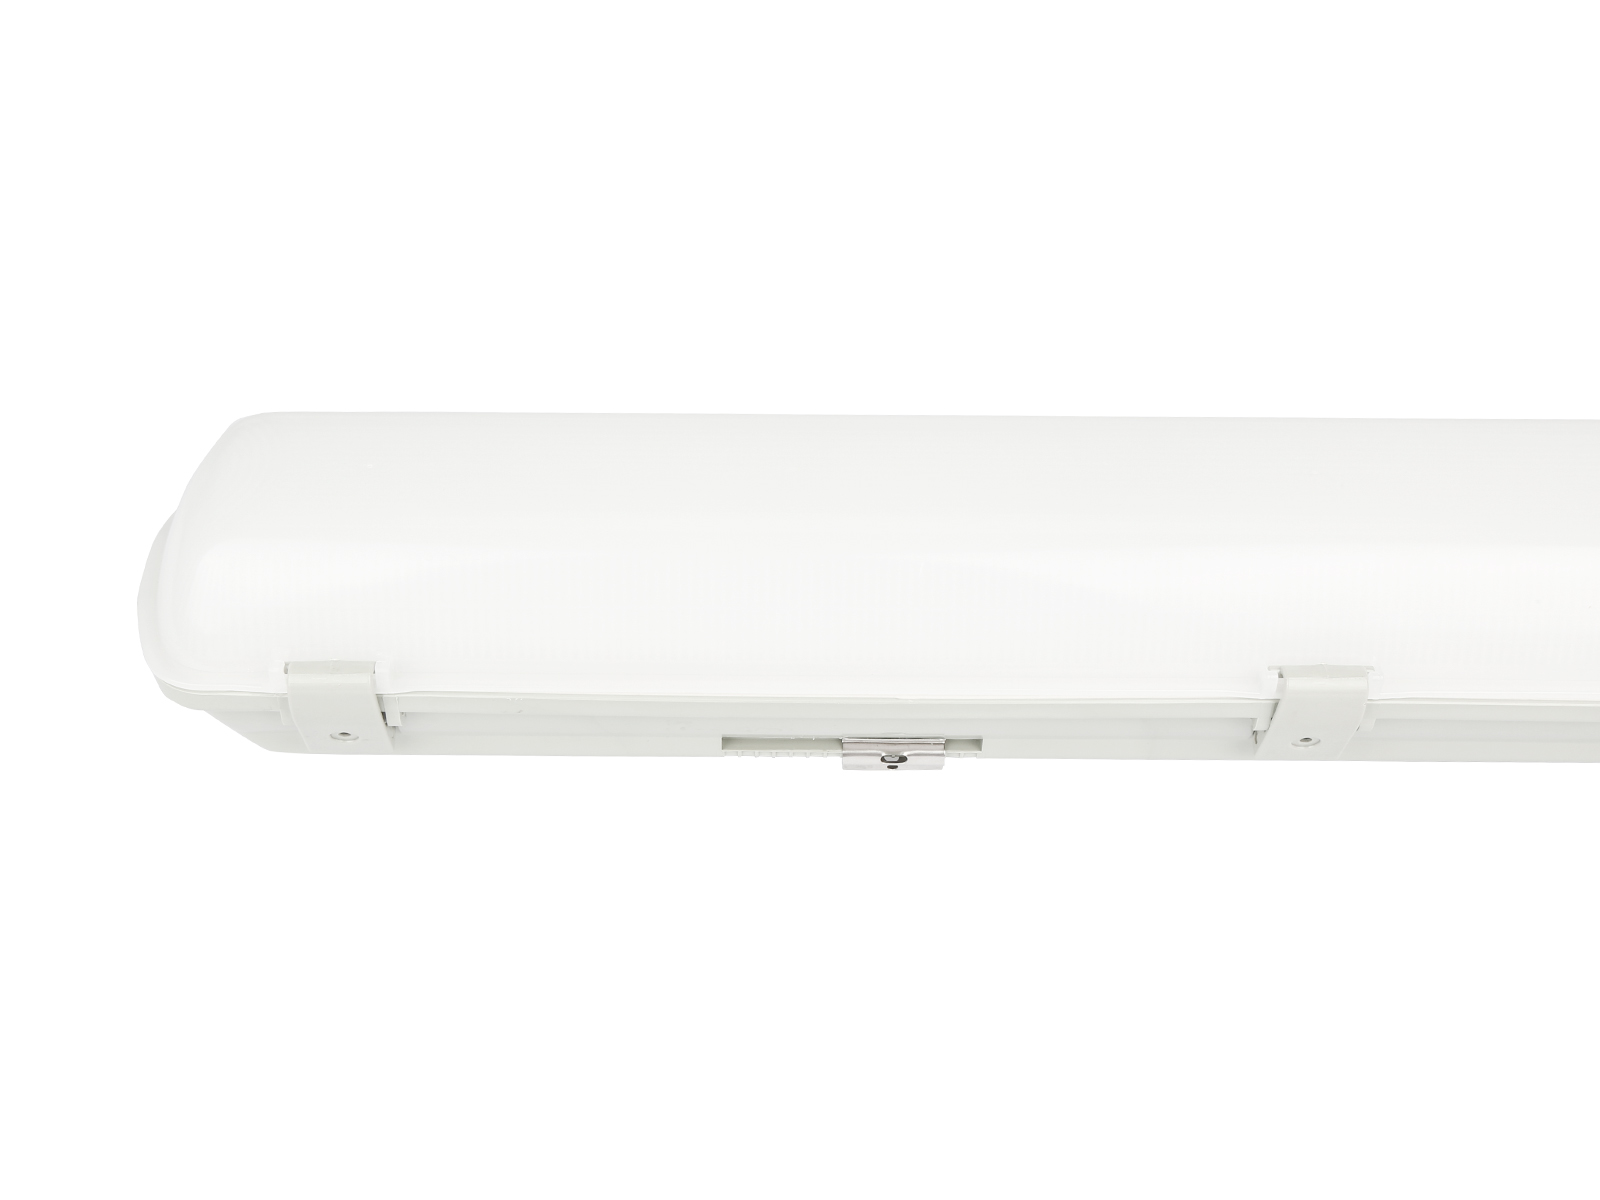 TRP01 2 600mm Tri proof LED Light